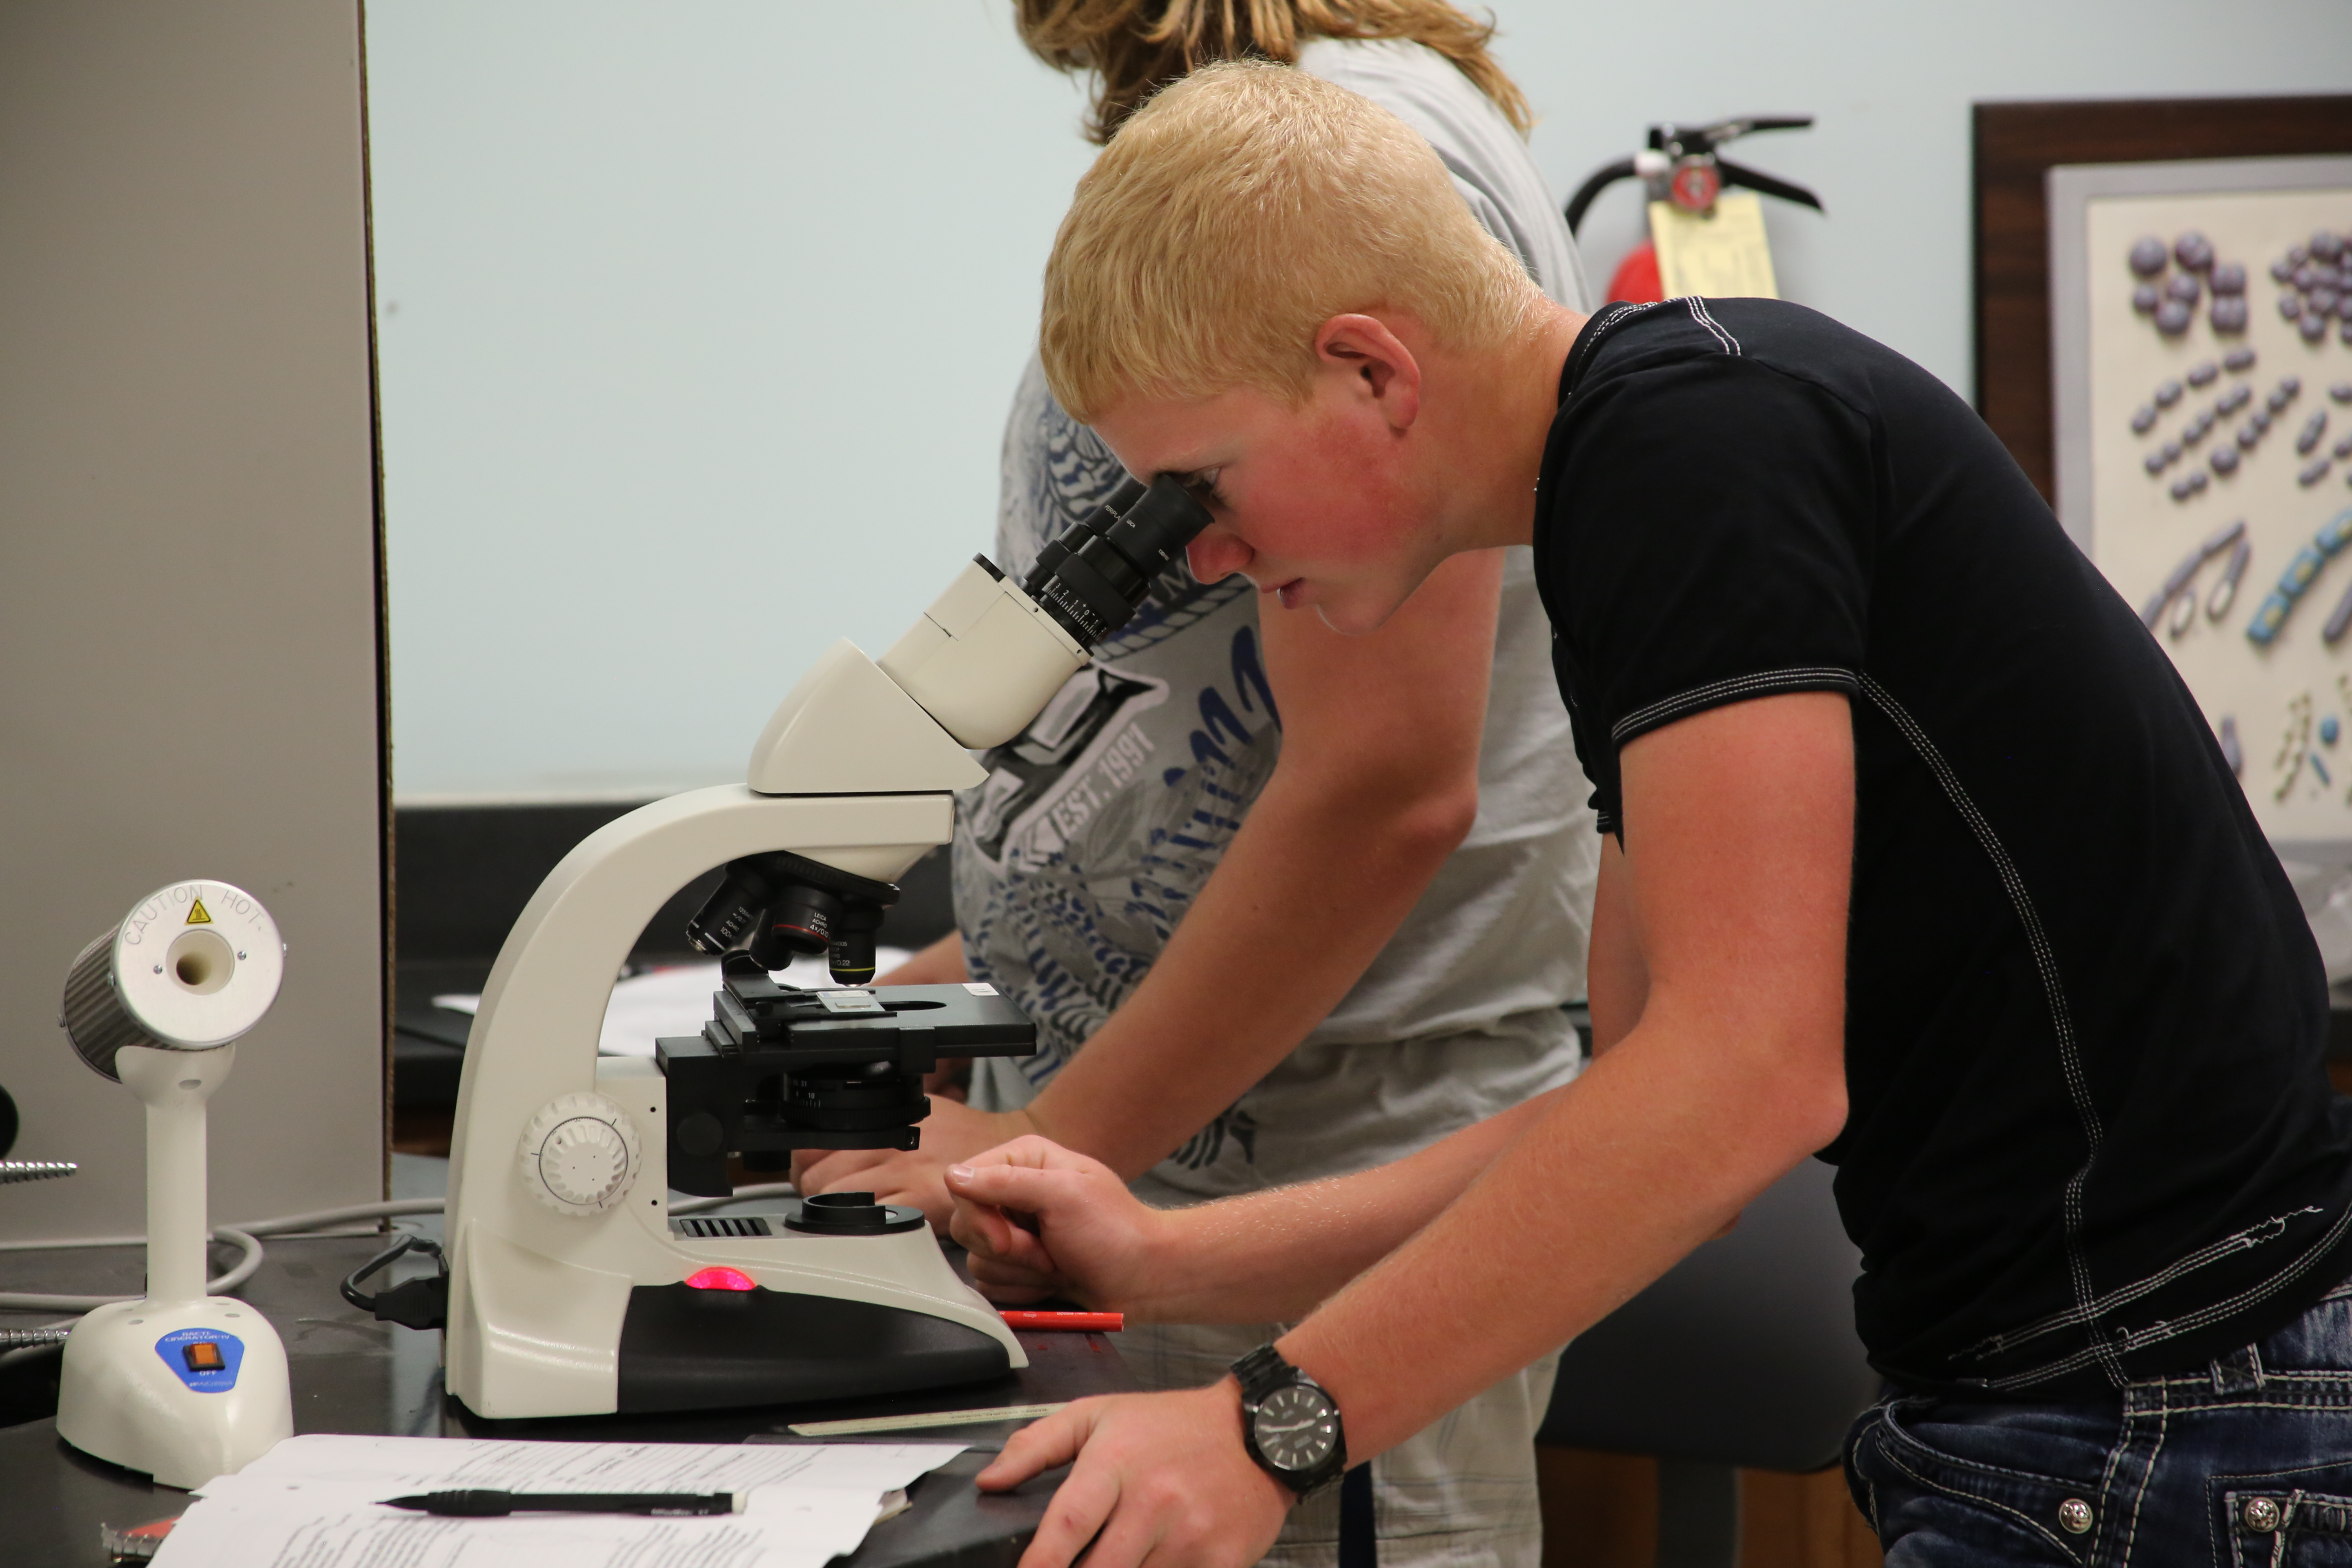 Student looking into a microscope